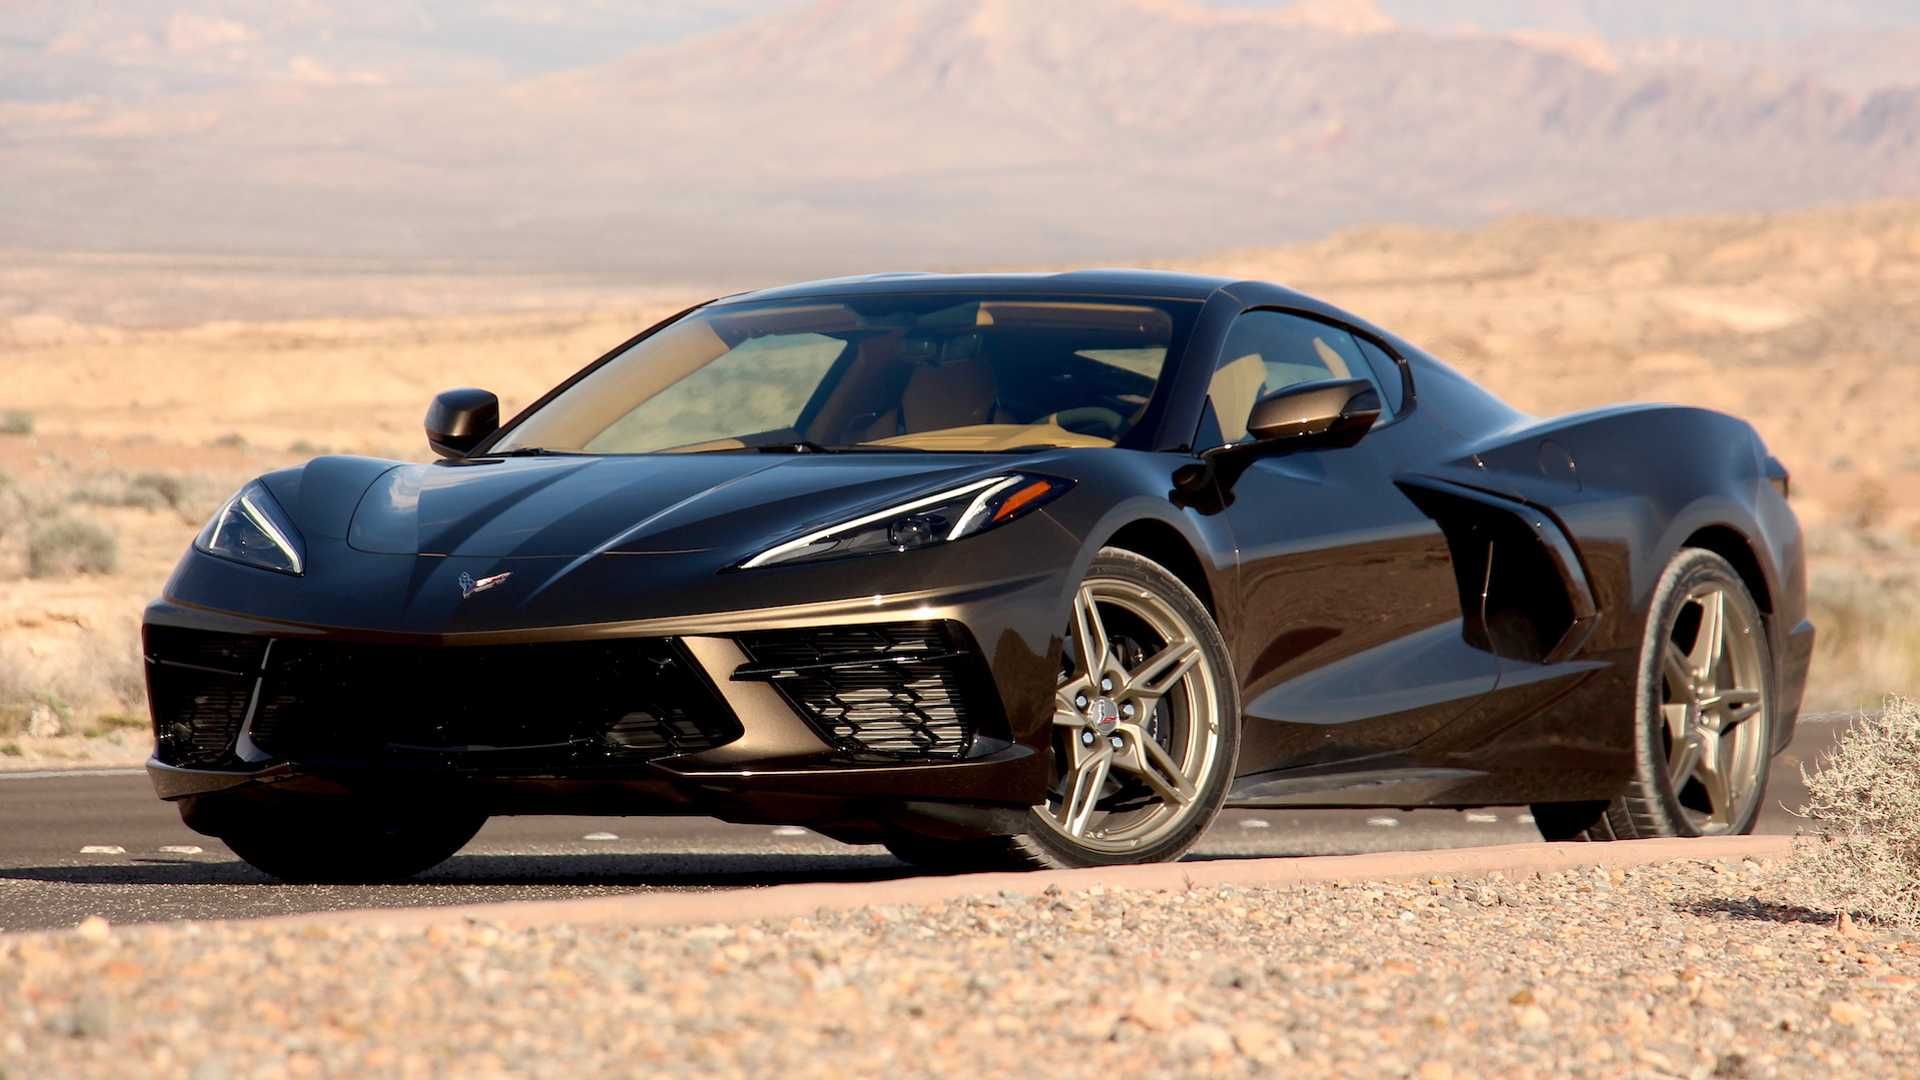 For a long time, tuners had been unable to start working on the eighth-gen Chevrolet Corvette due to an encrypted ECU, but everything changed when a workaround was found. FuelTech has just reported cranking their 'Vette up to hypercar levels of performance.